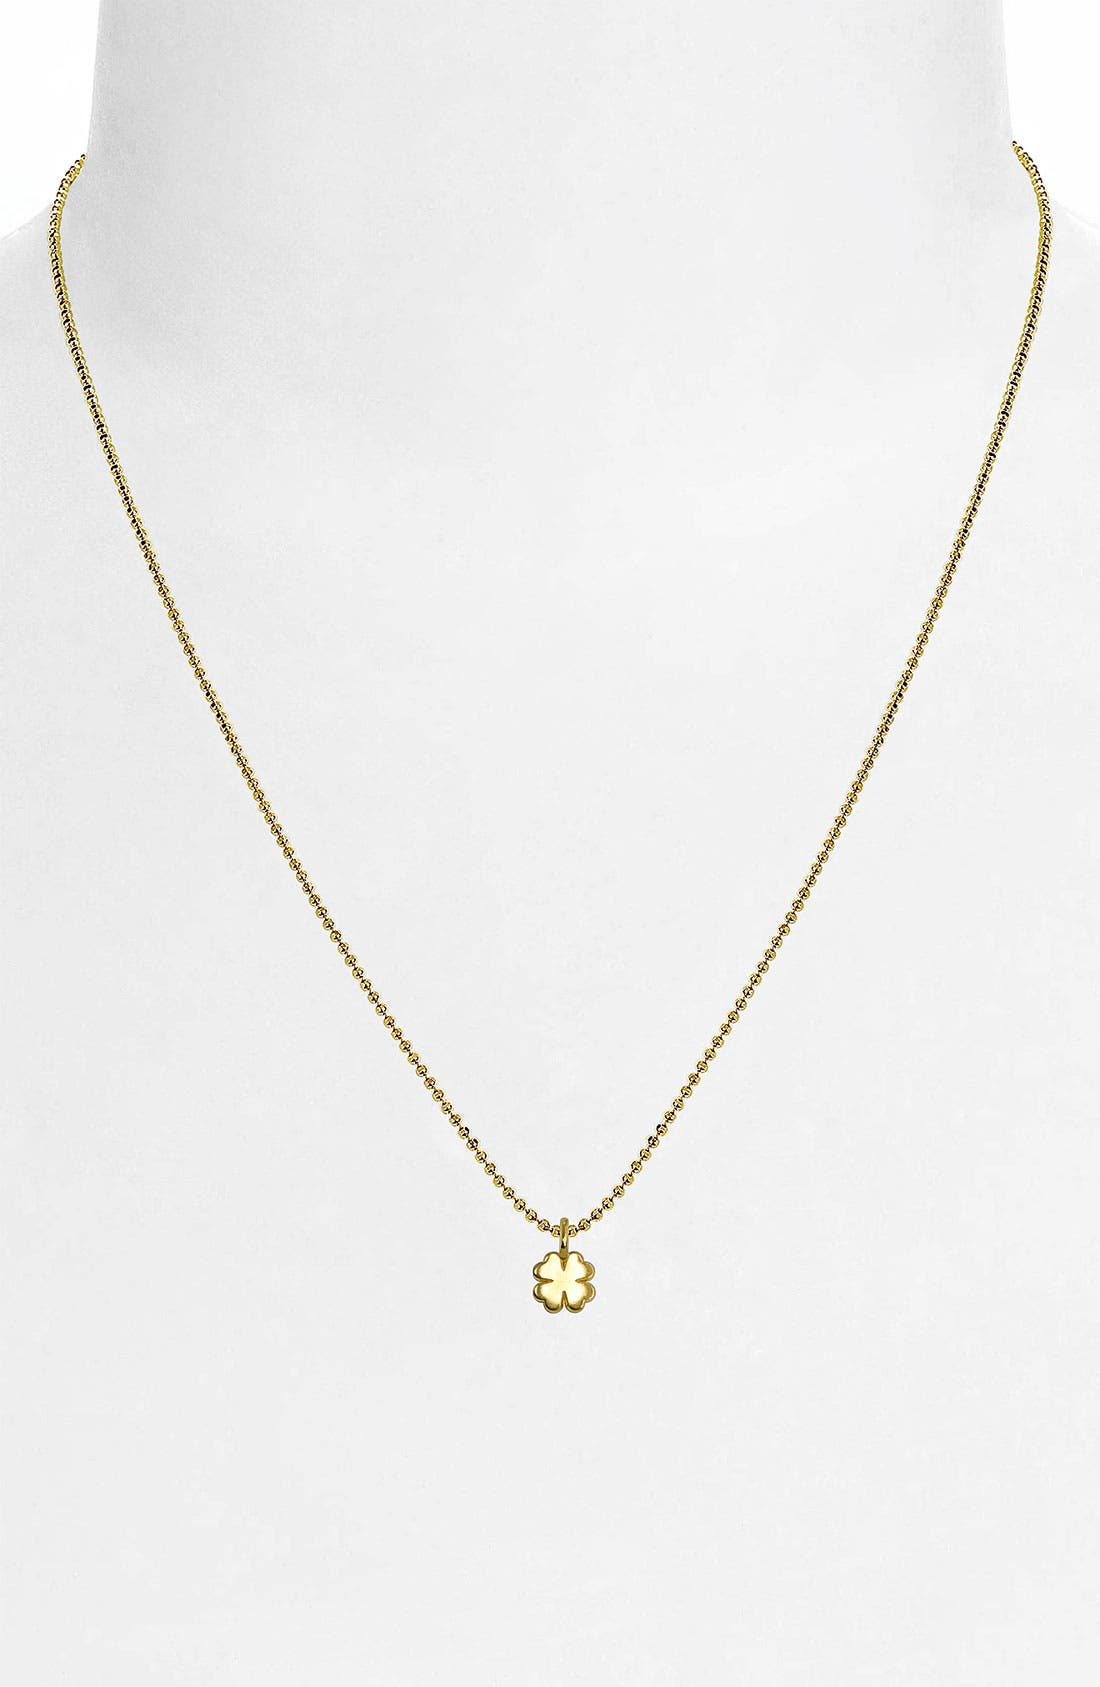 Alternate Image 2  - Alex Woo 'Mini Clover' 14k Gold Pendant Necklace